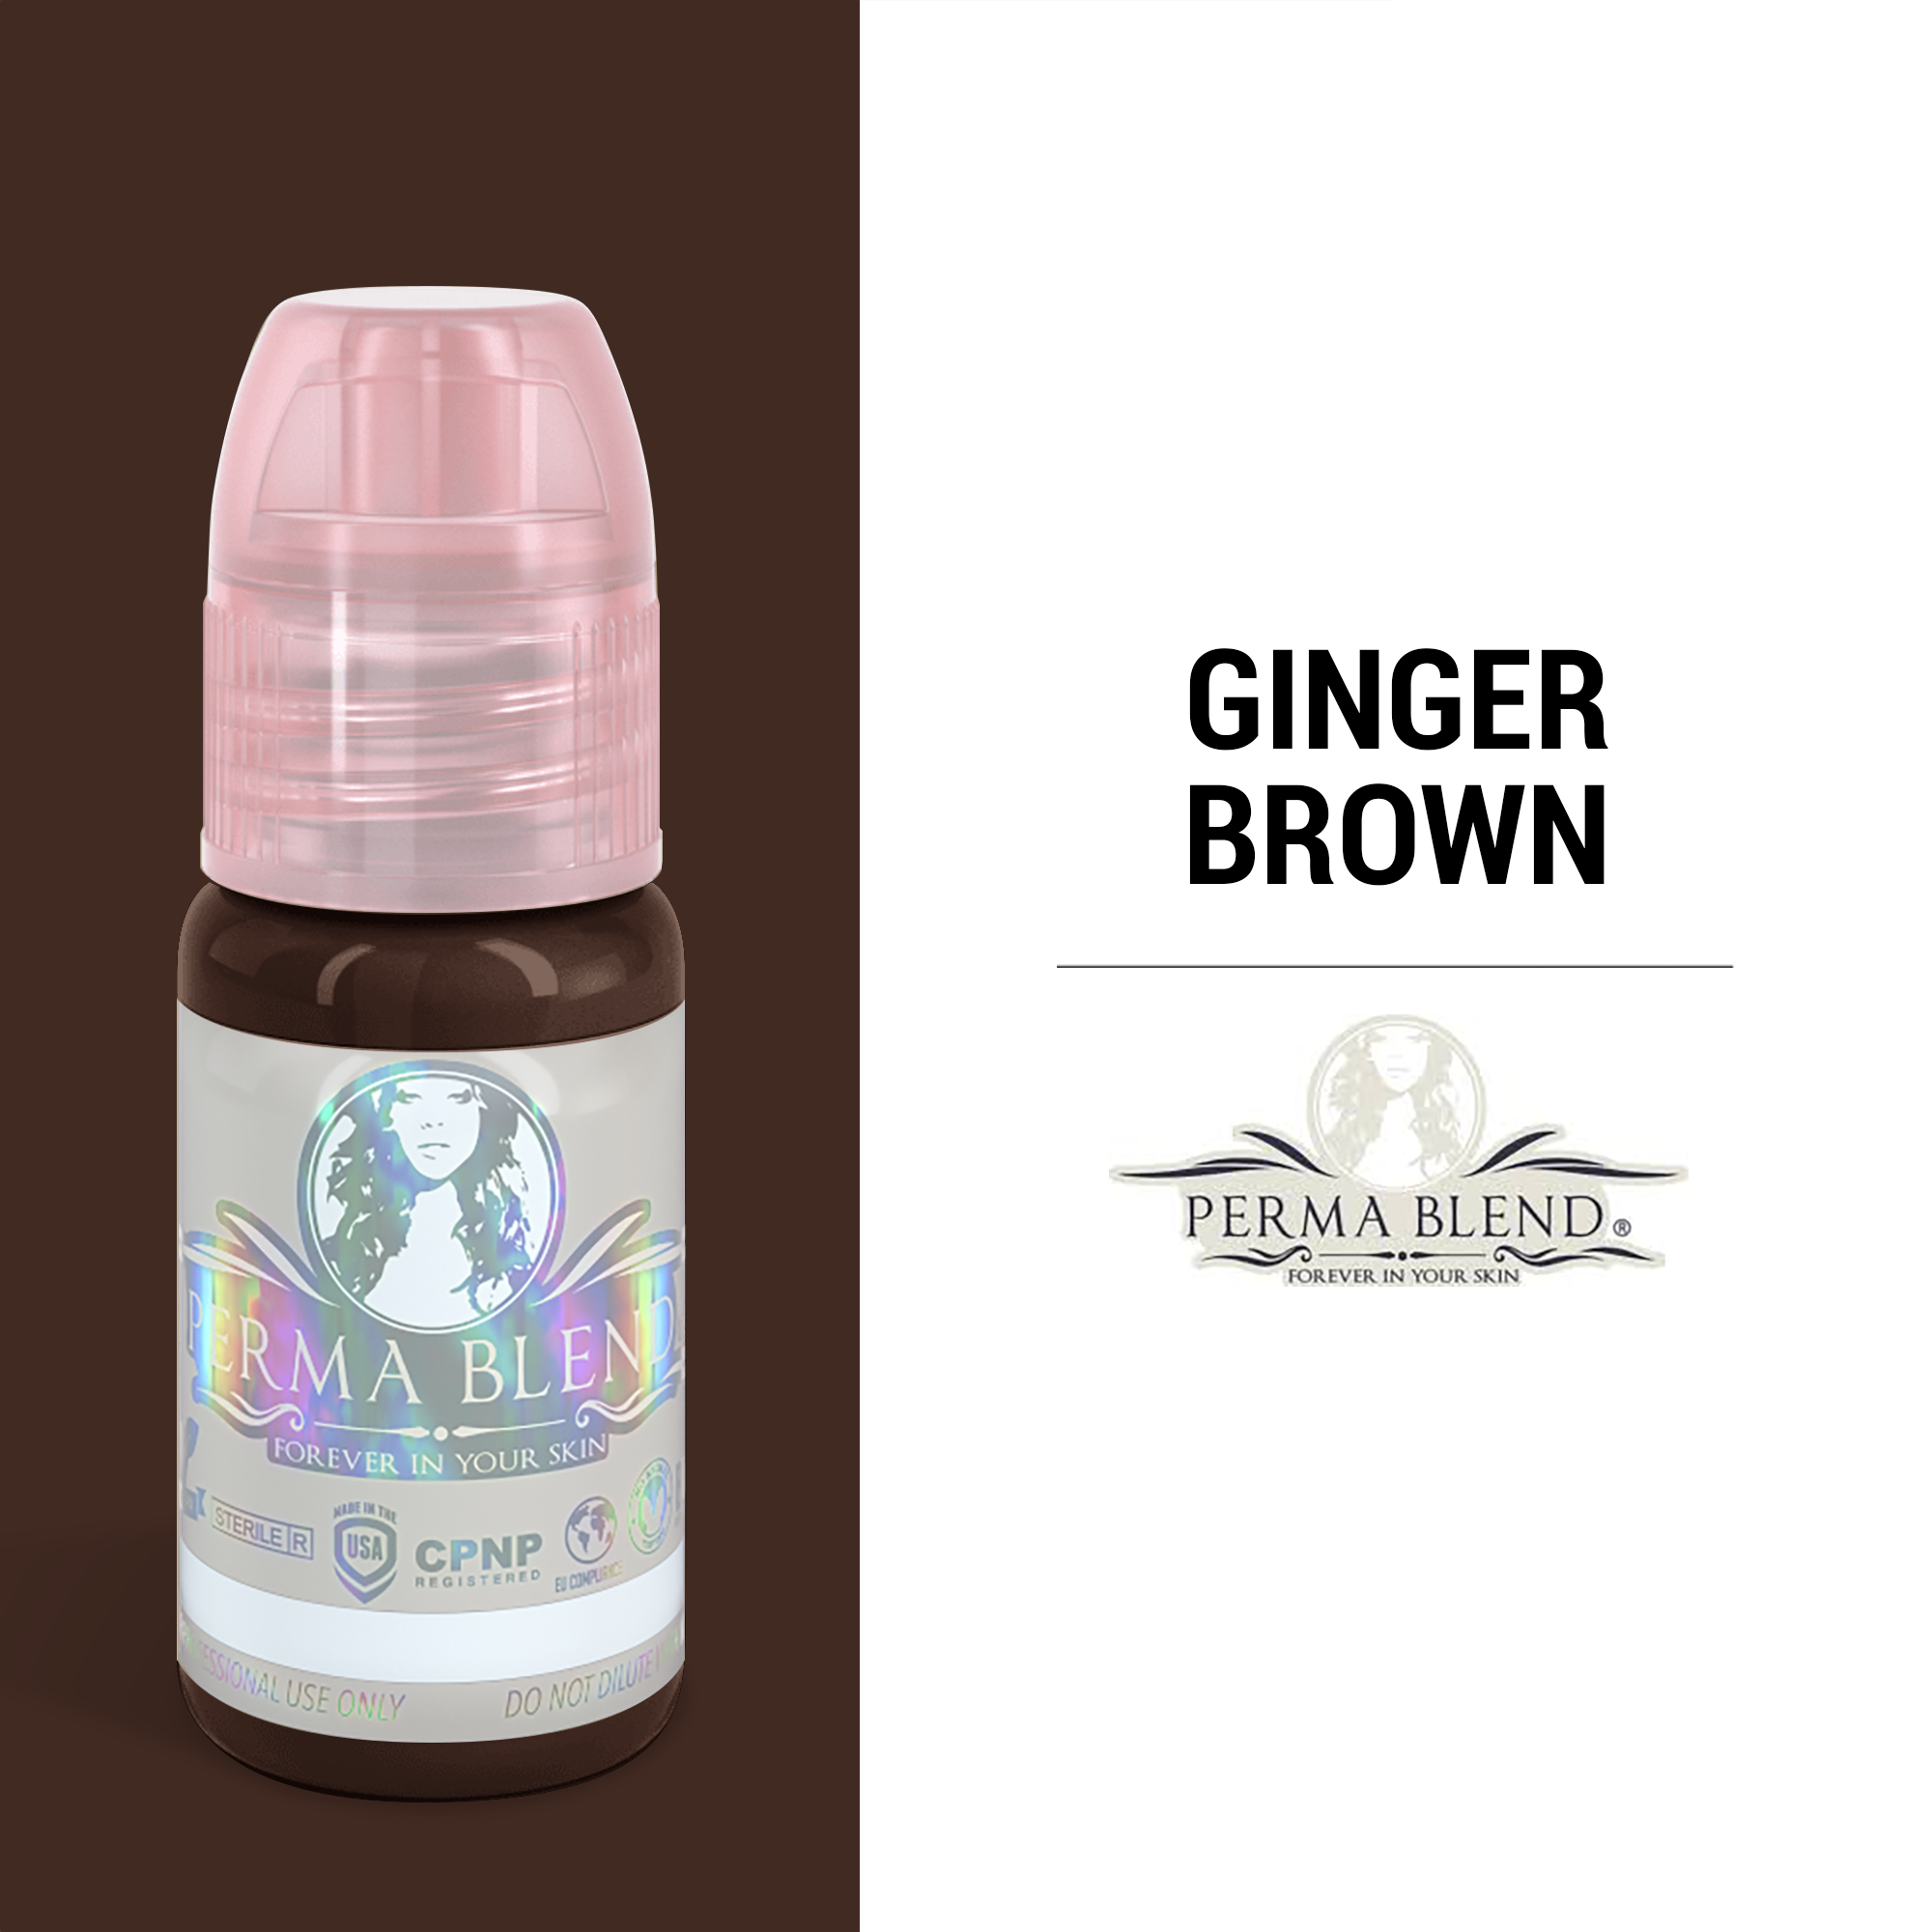 Perma Blend Ginger Brown